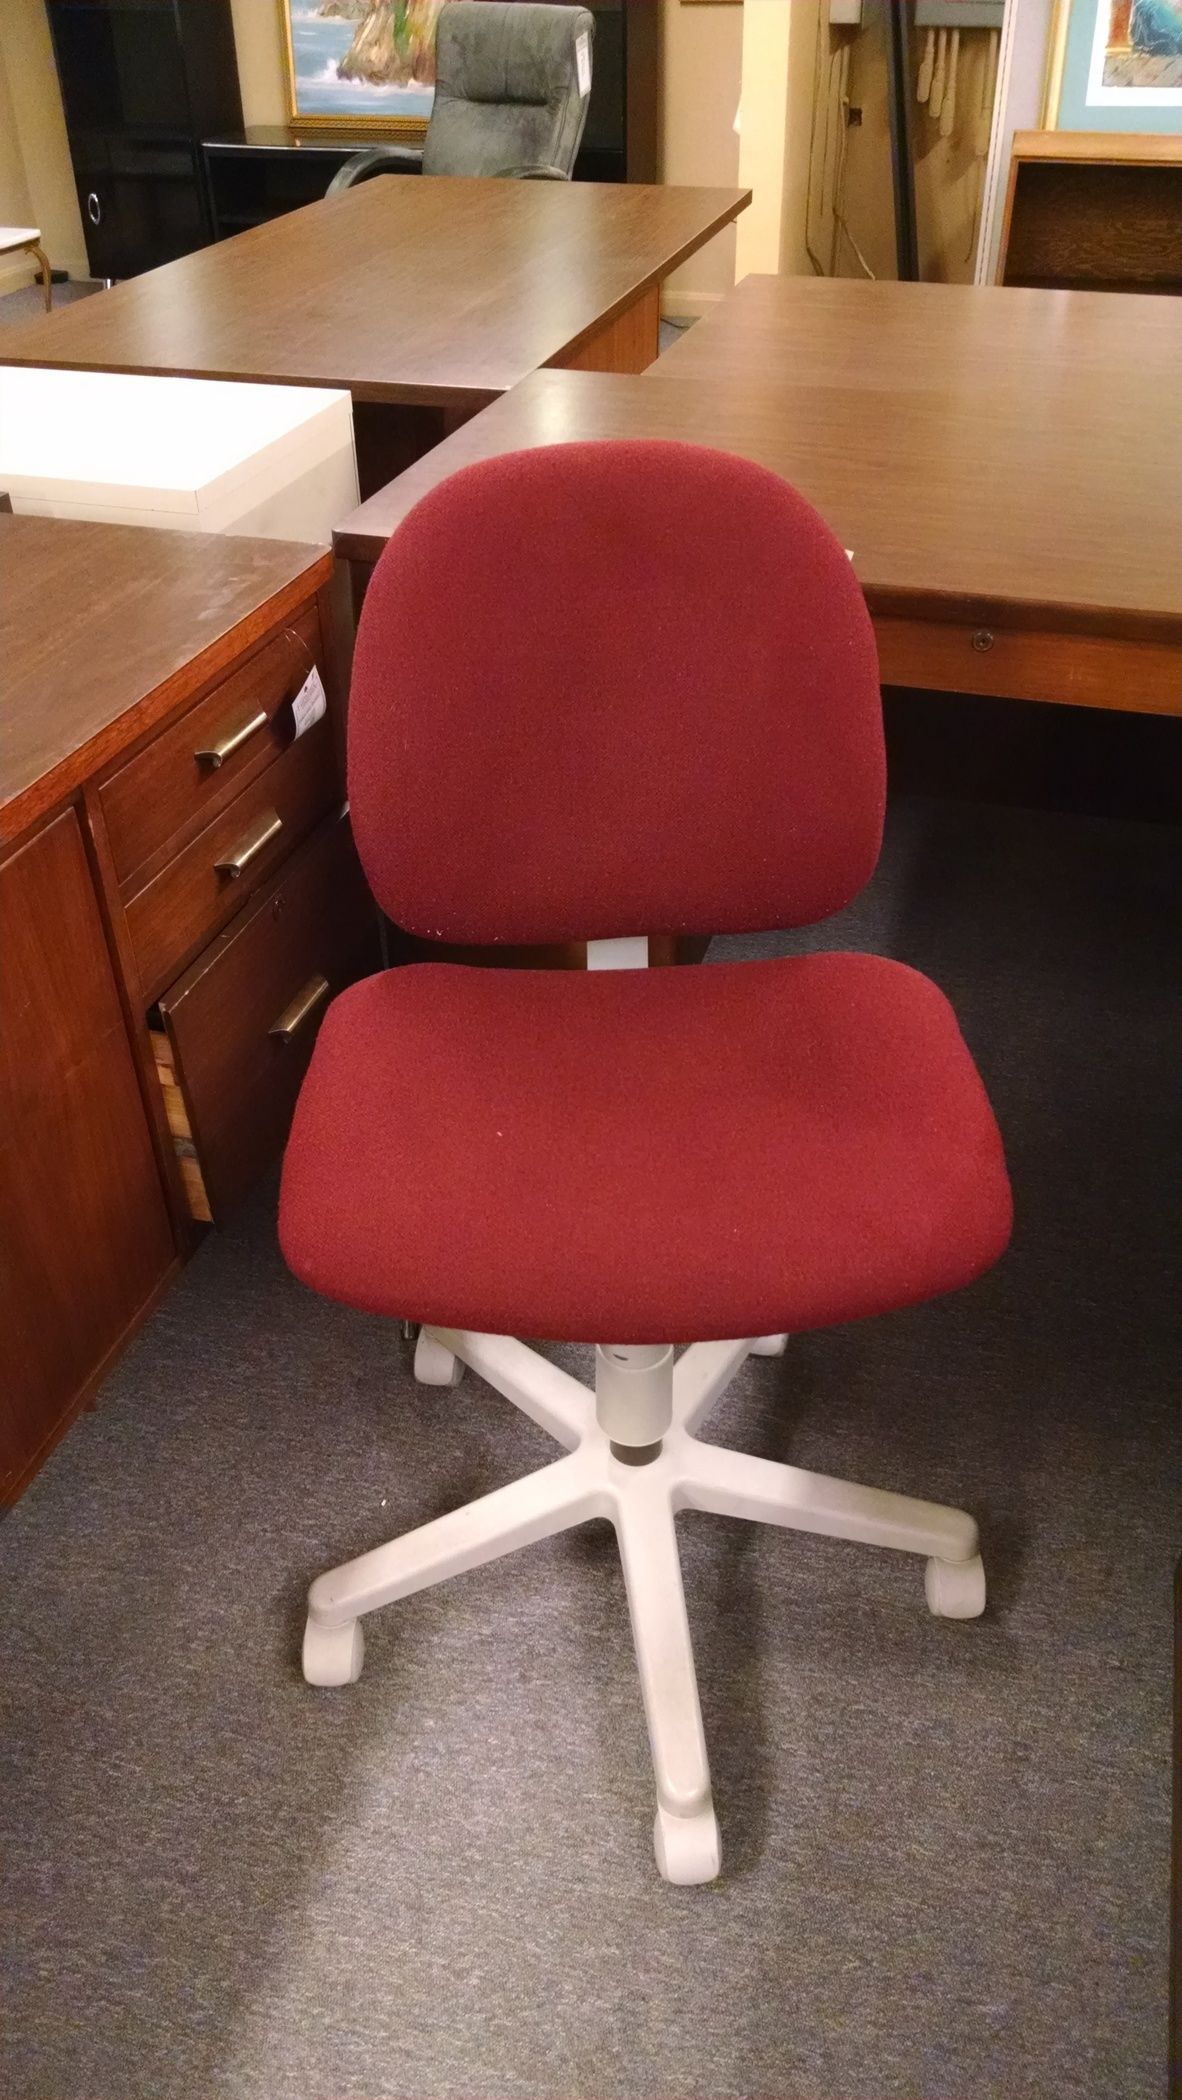 maroon office chairs stair chair for sale delmarva furniture consignment